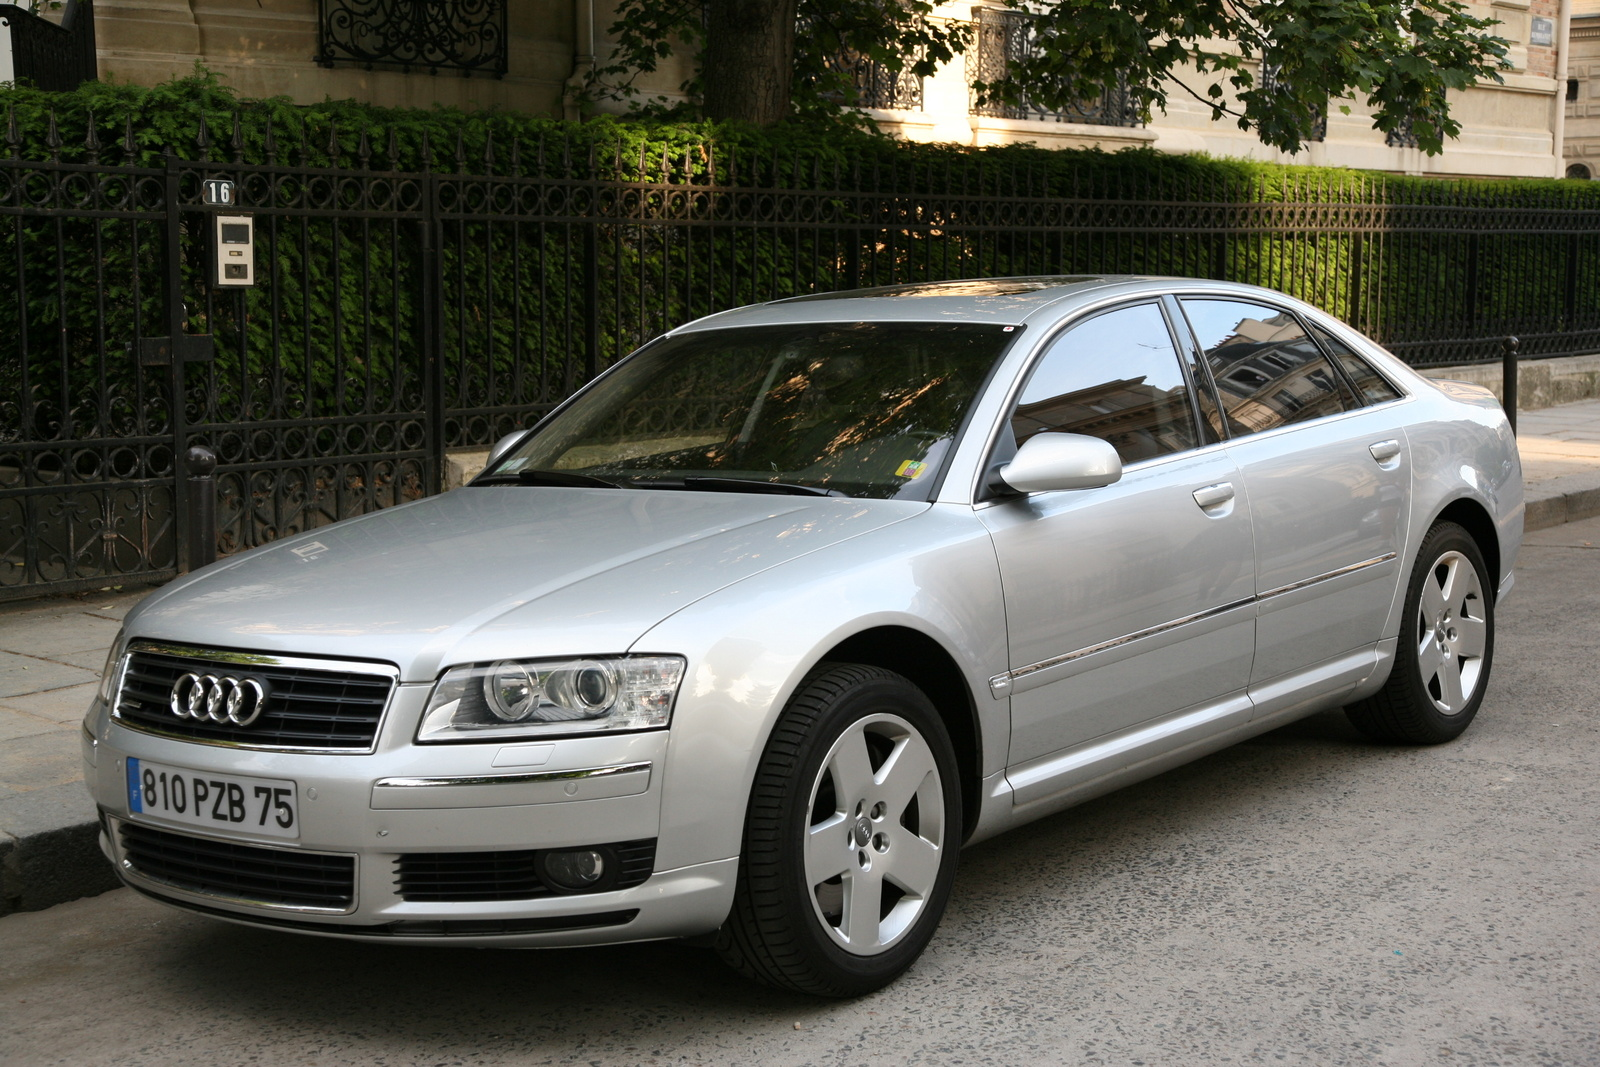 2004 Audi A8 Photos Informations Articles A4 Wiring Harness 2